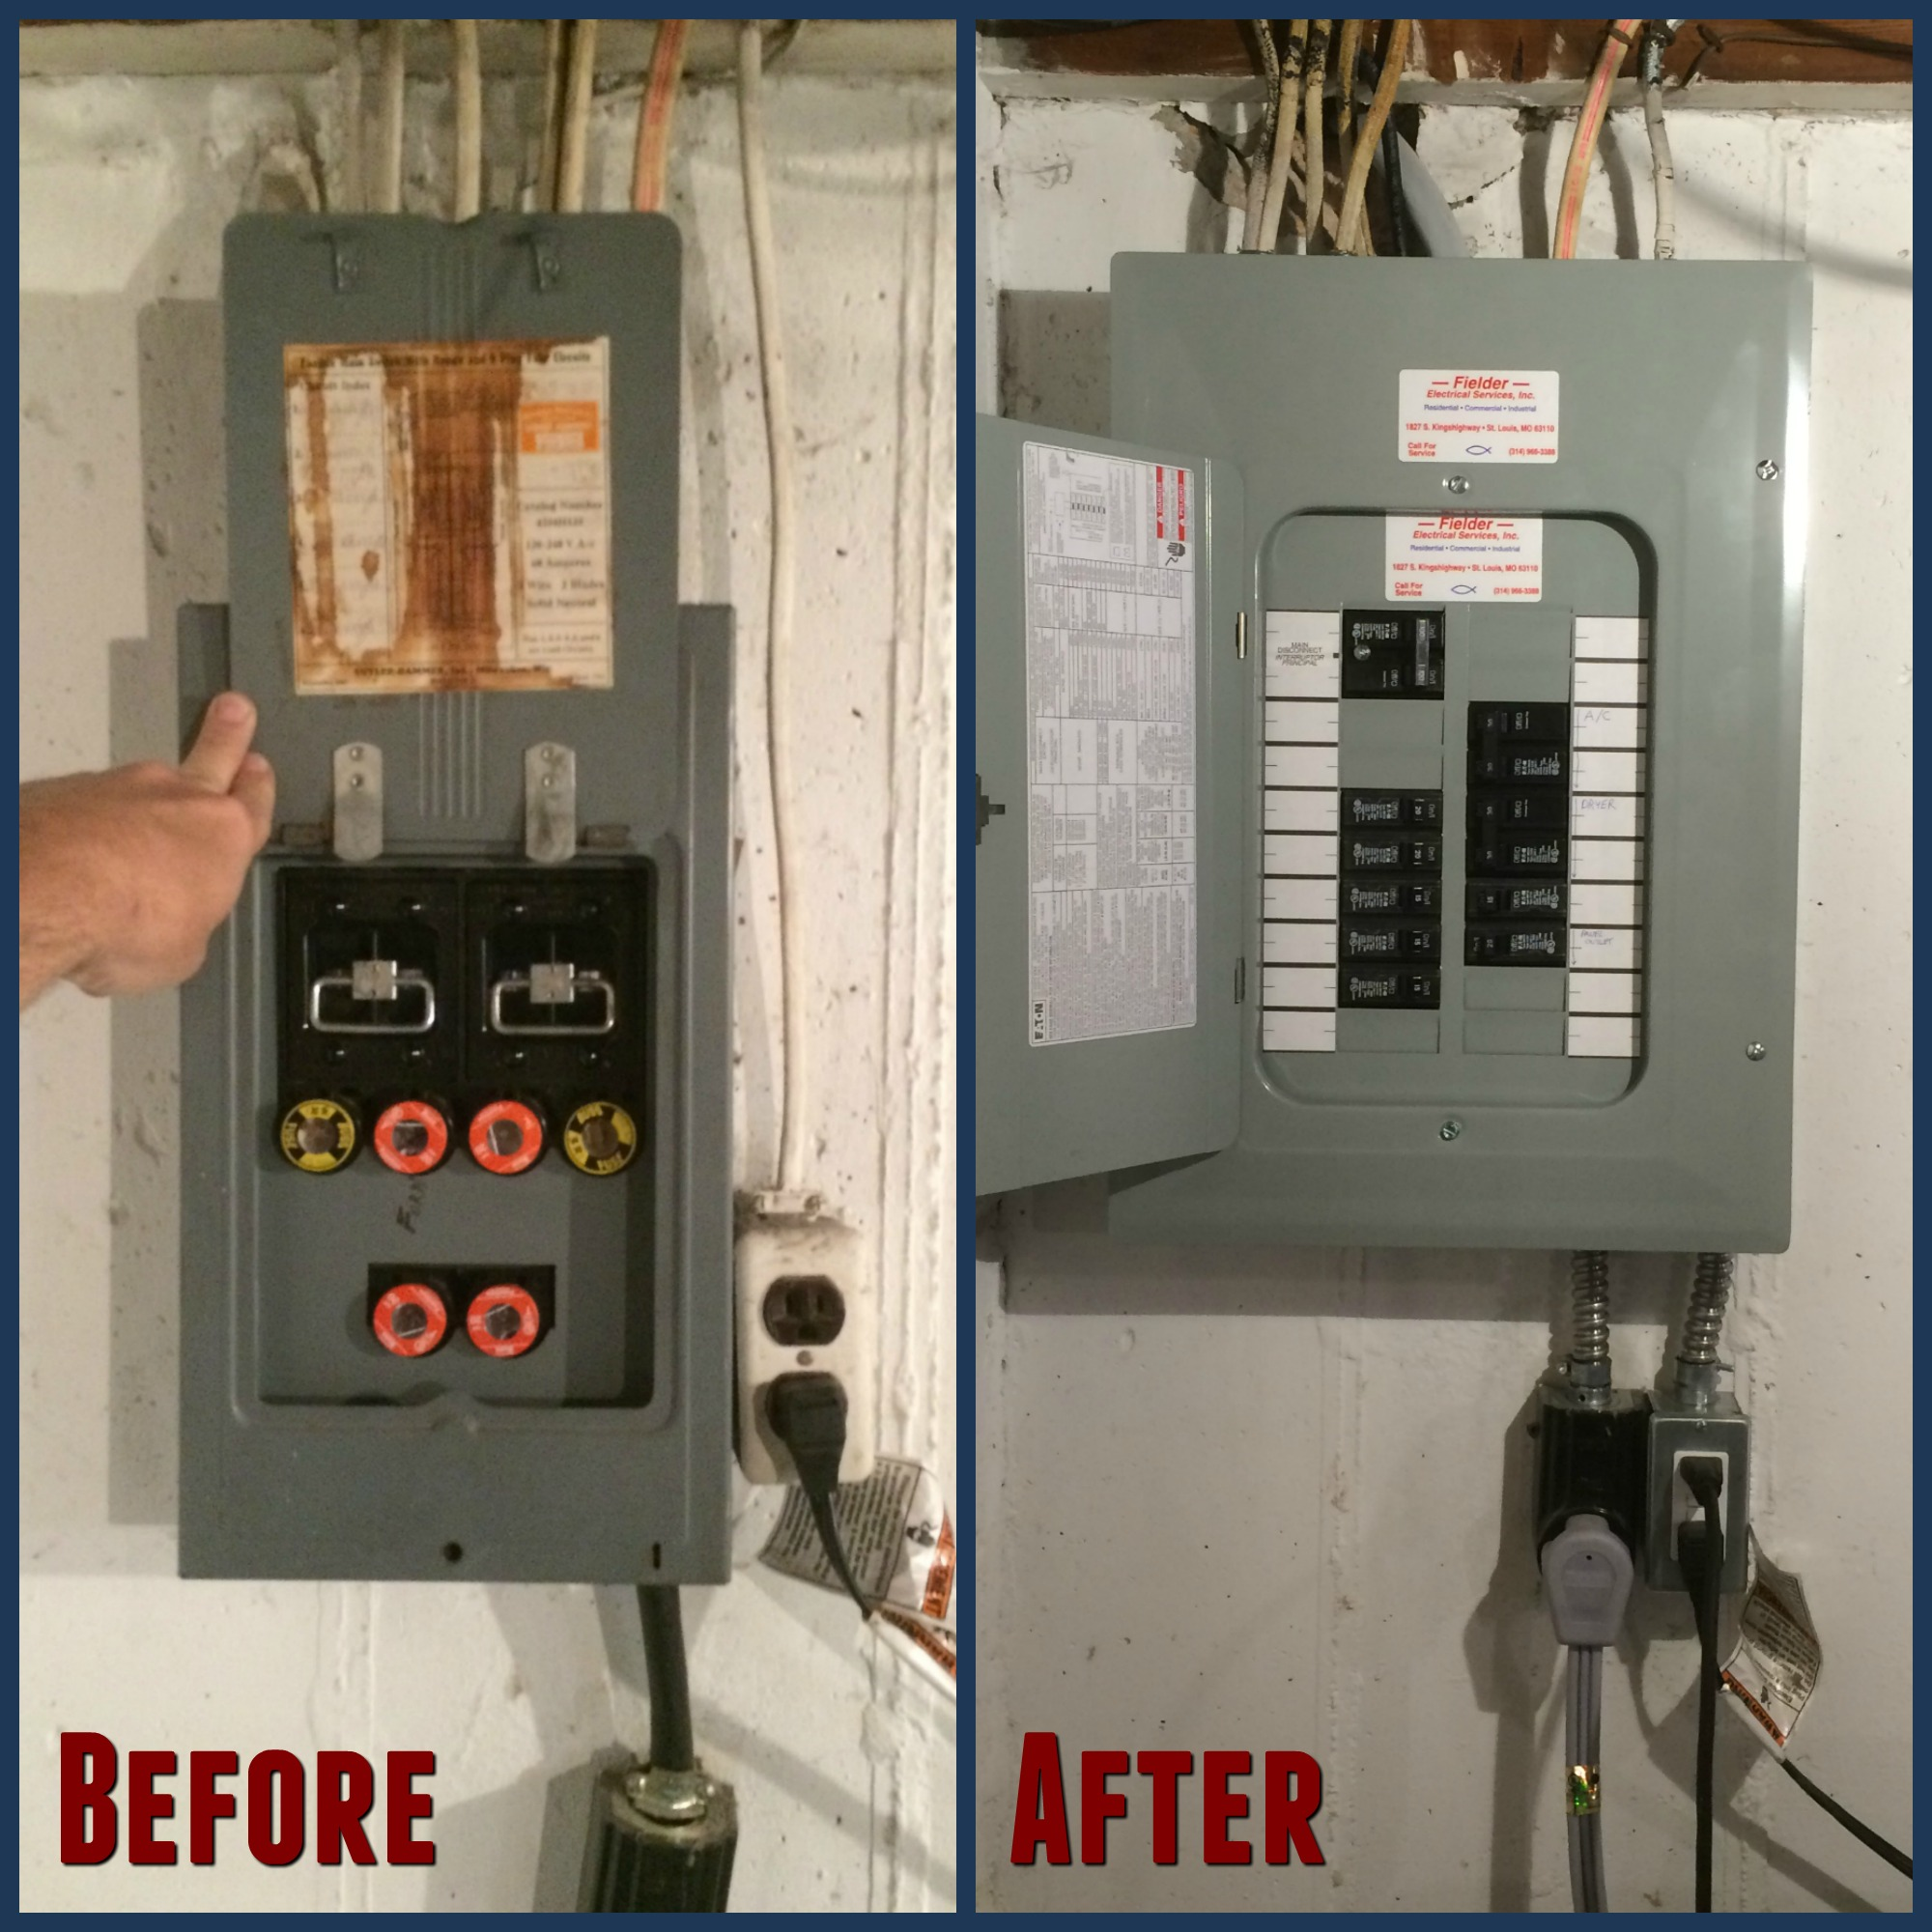 Fuse box replaced with electrical panel service panel wiring diagram 200 amp panel wiring diagram \u2022 free residential circuit breaker panel diagram at virtualis.co